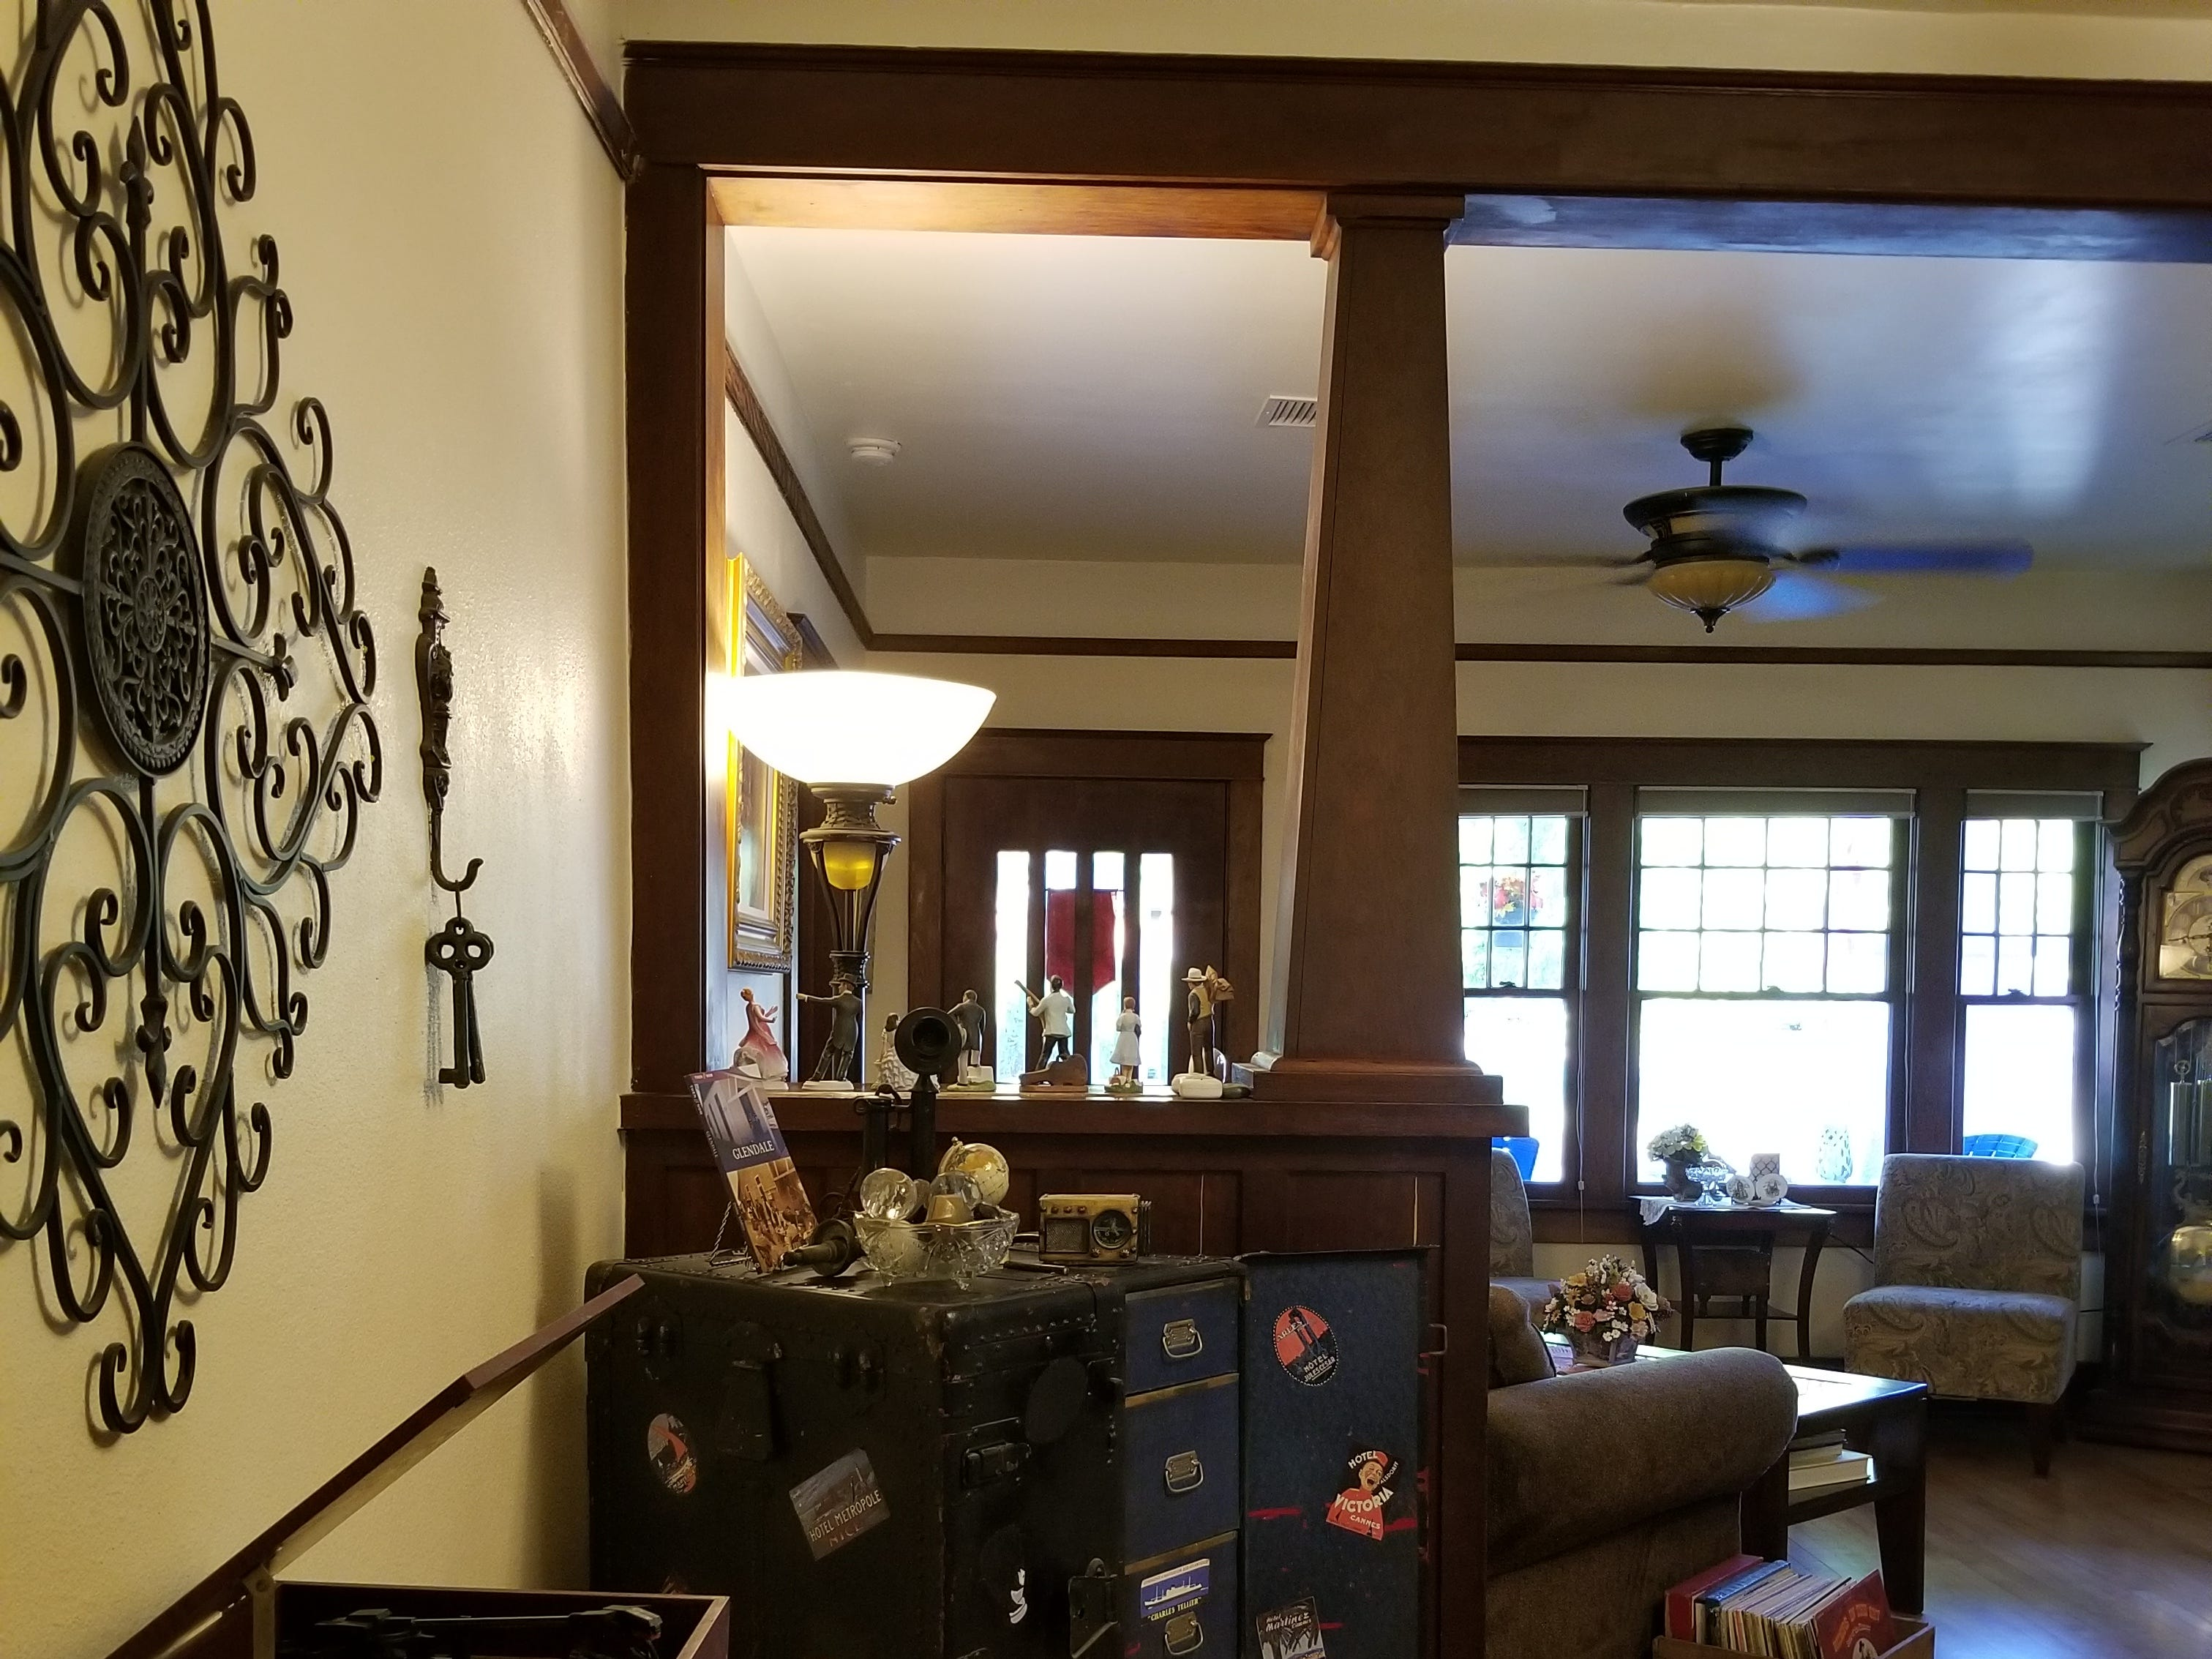 The dining room features antique luggage found at a family garage sale.